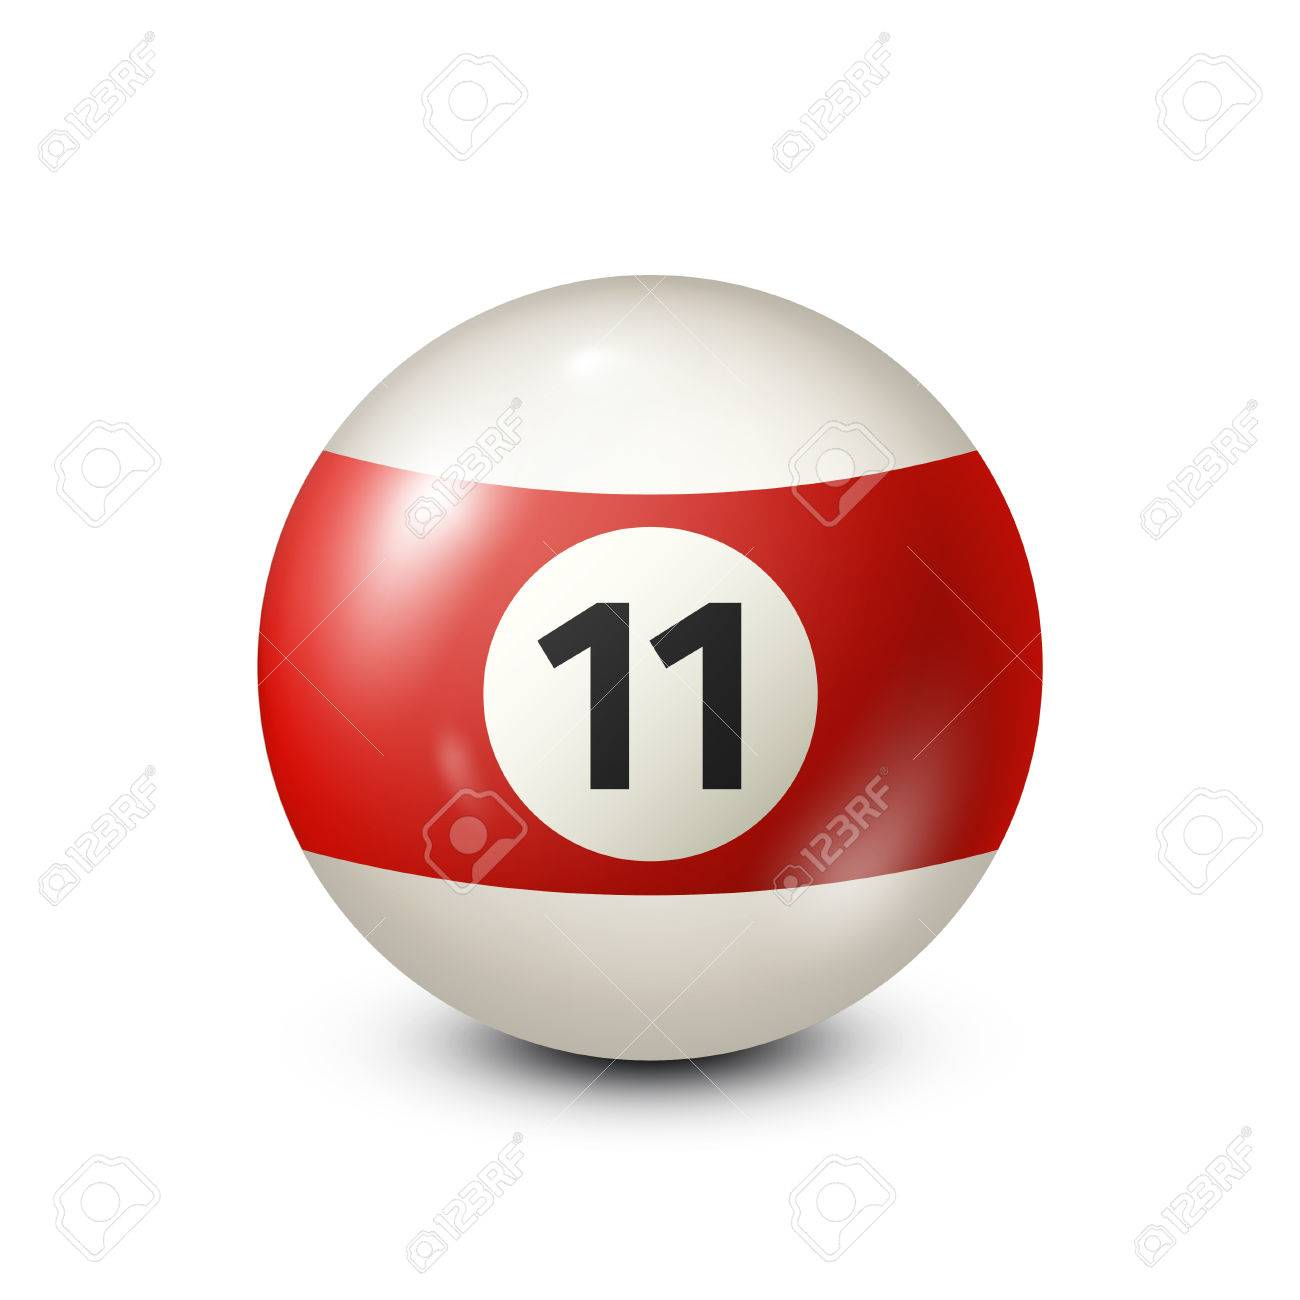 Billiard,red pool ball with number 11.Snooker. Transparent background.Vector illustration. - 80446035